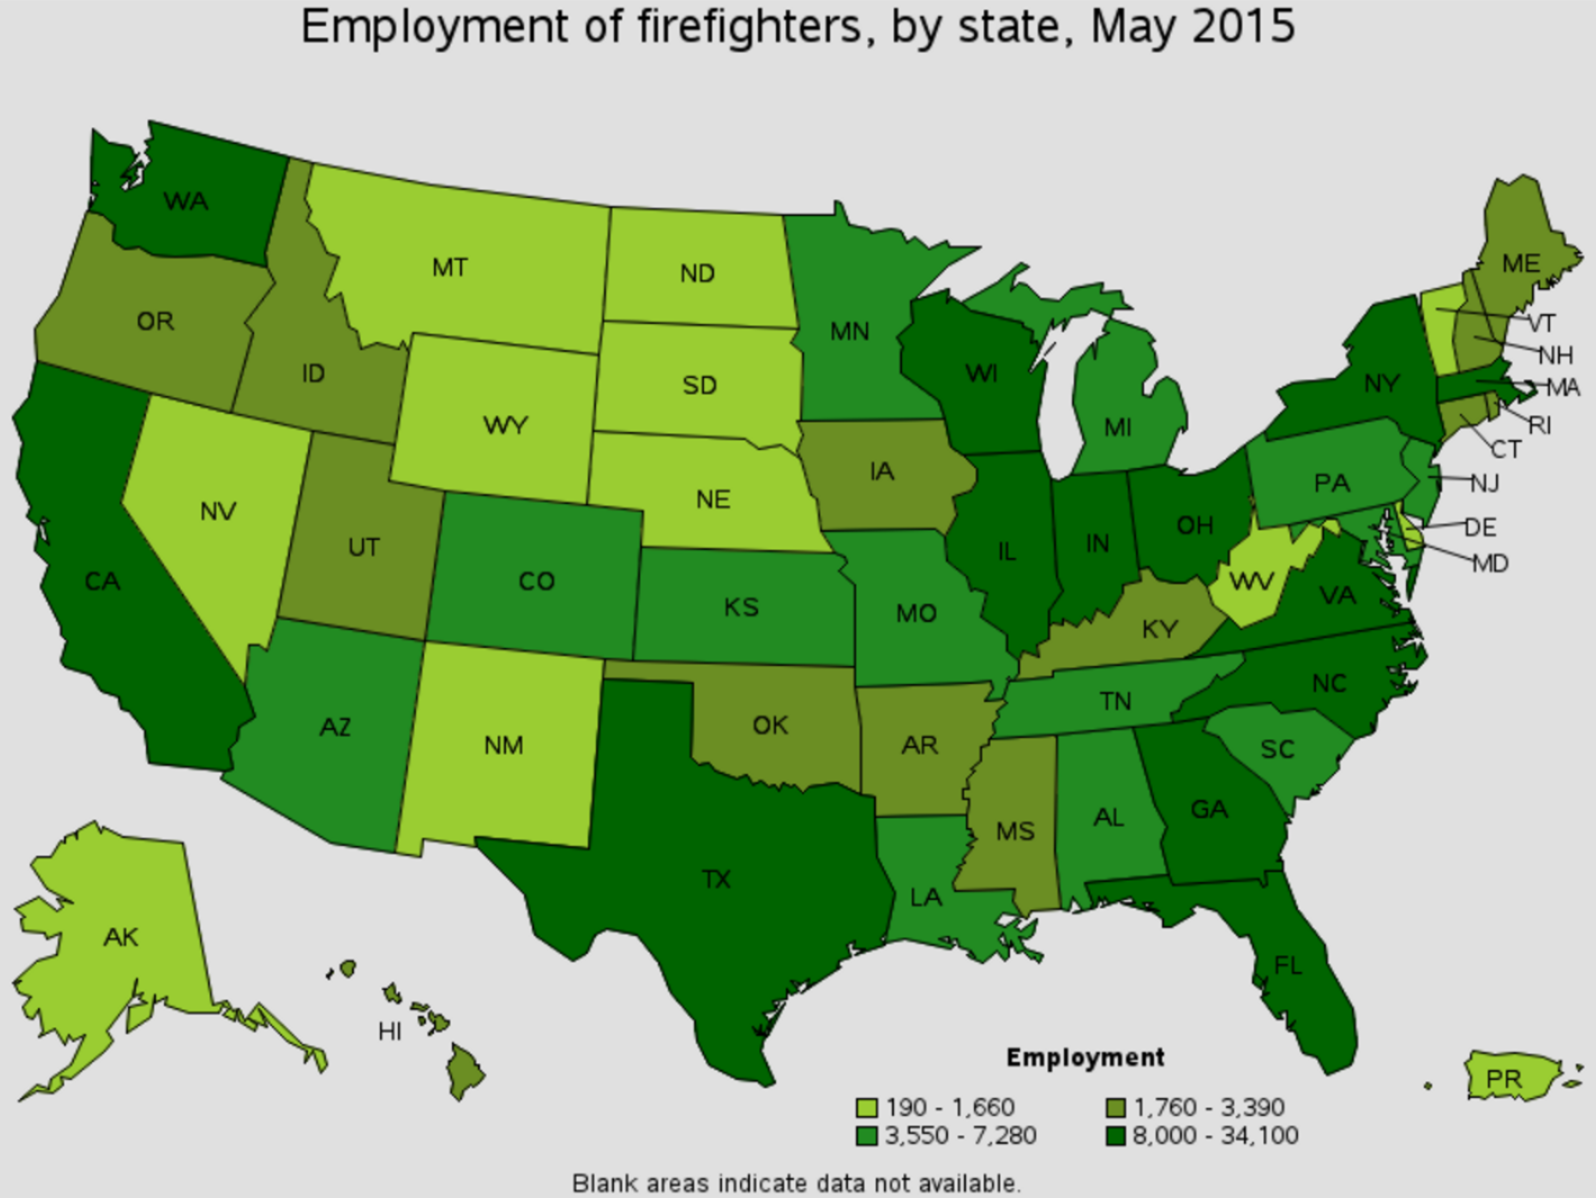 firefighter job outlook by state Palo Verde Arizona